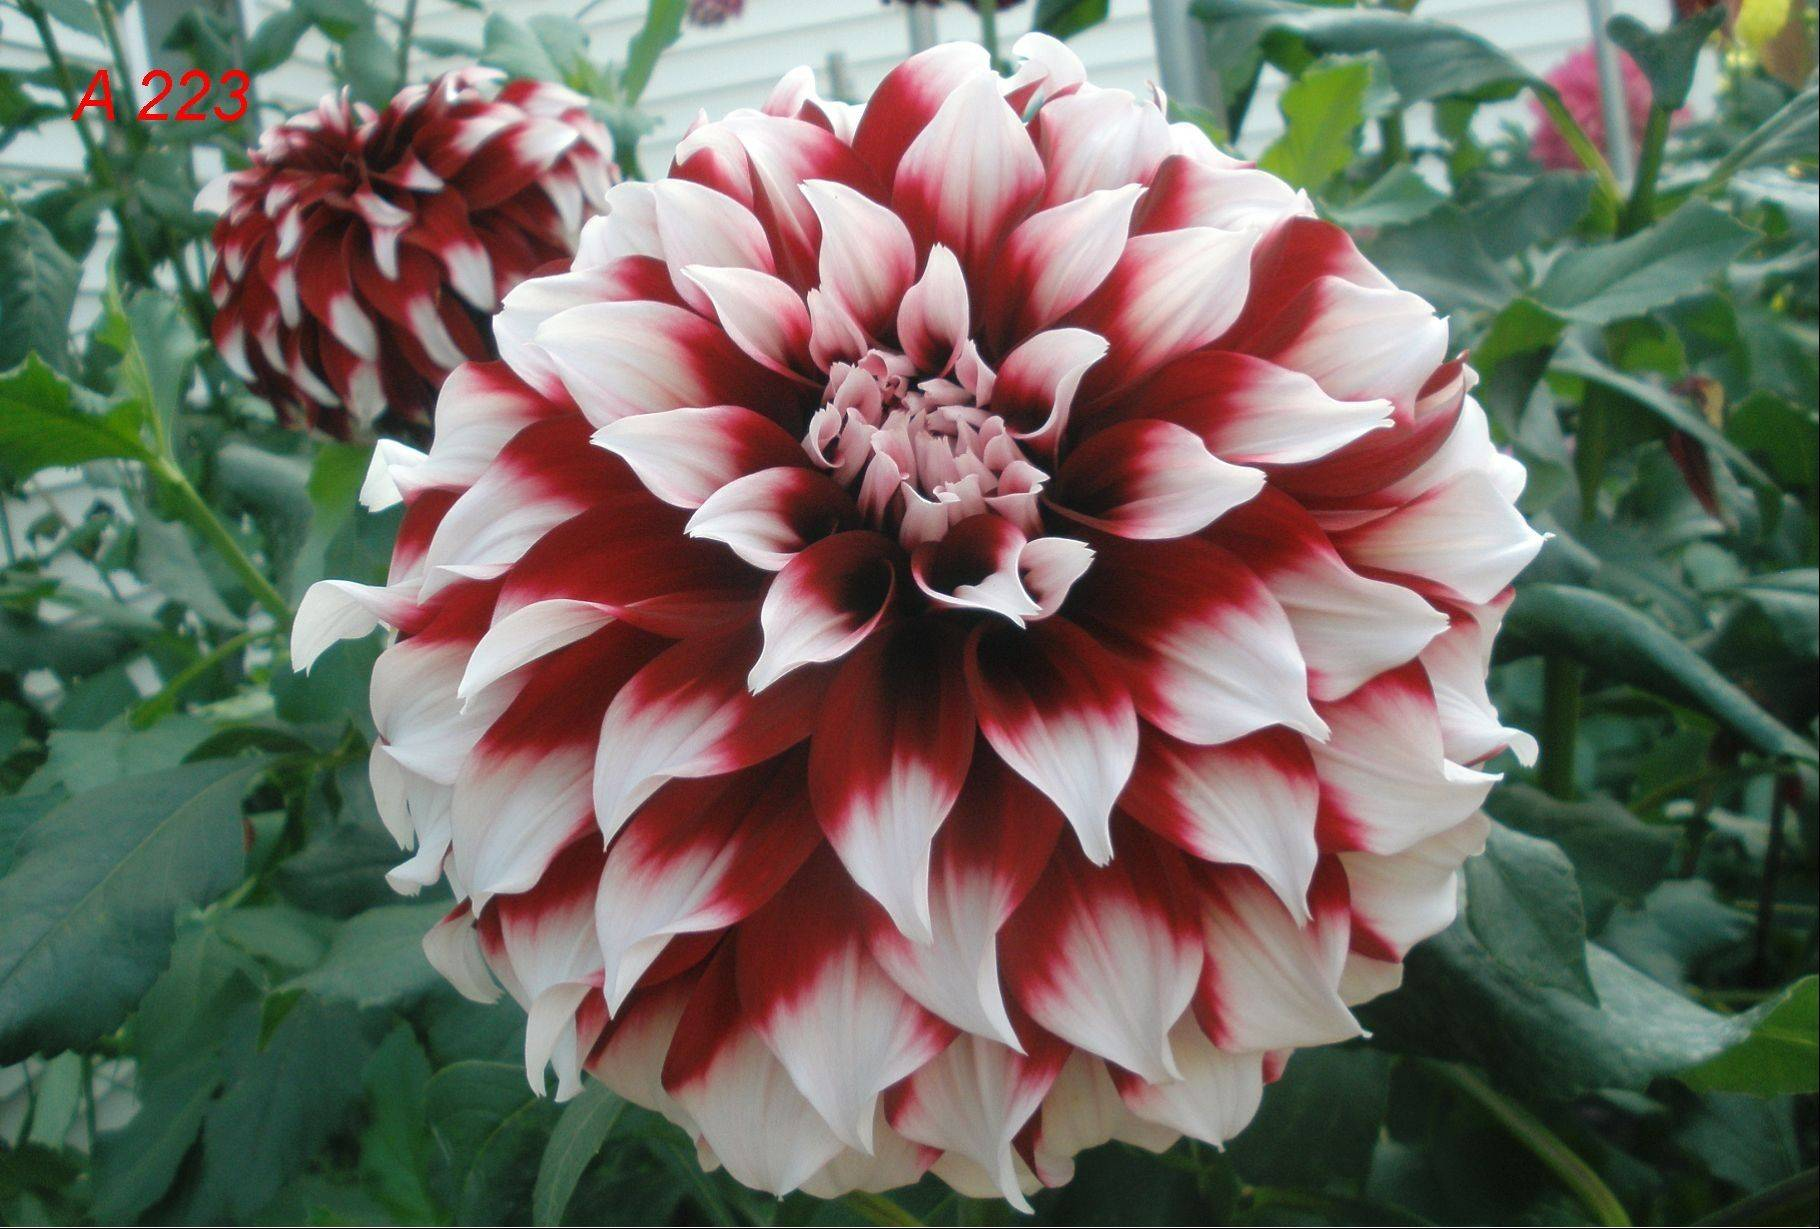 Steve Meggos' dahlias can be bicolored.